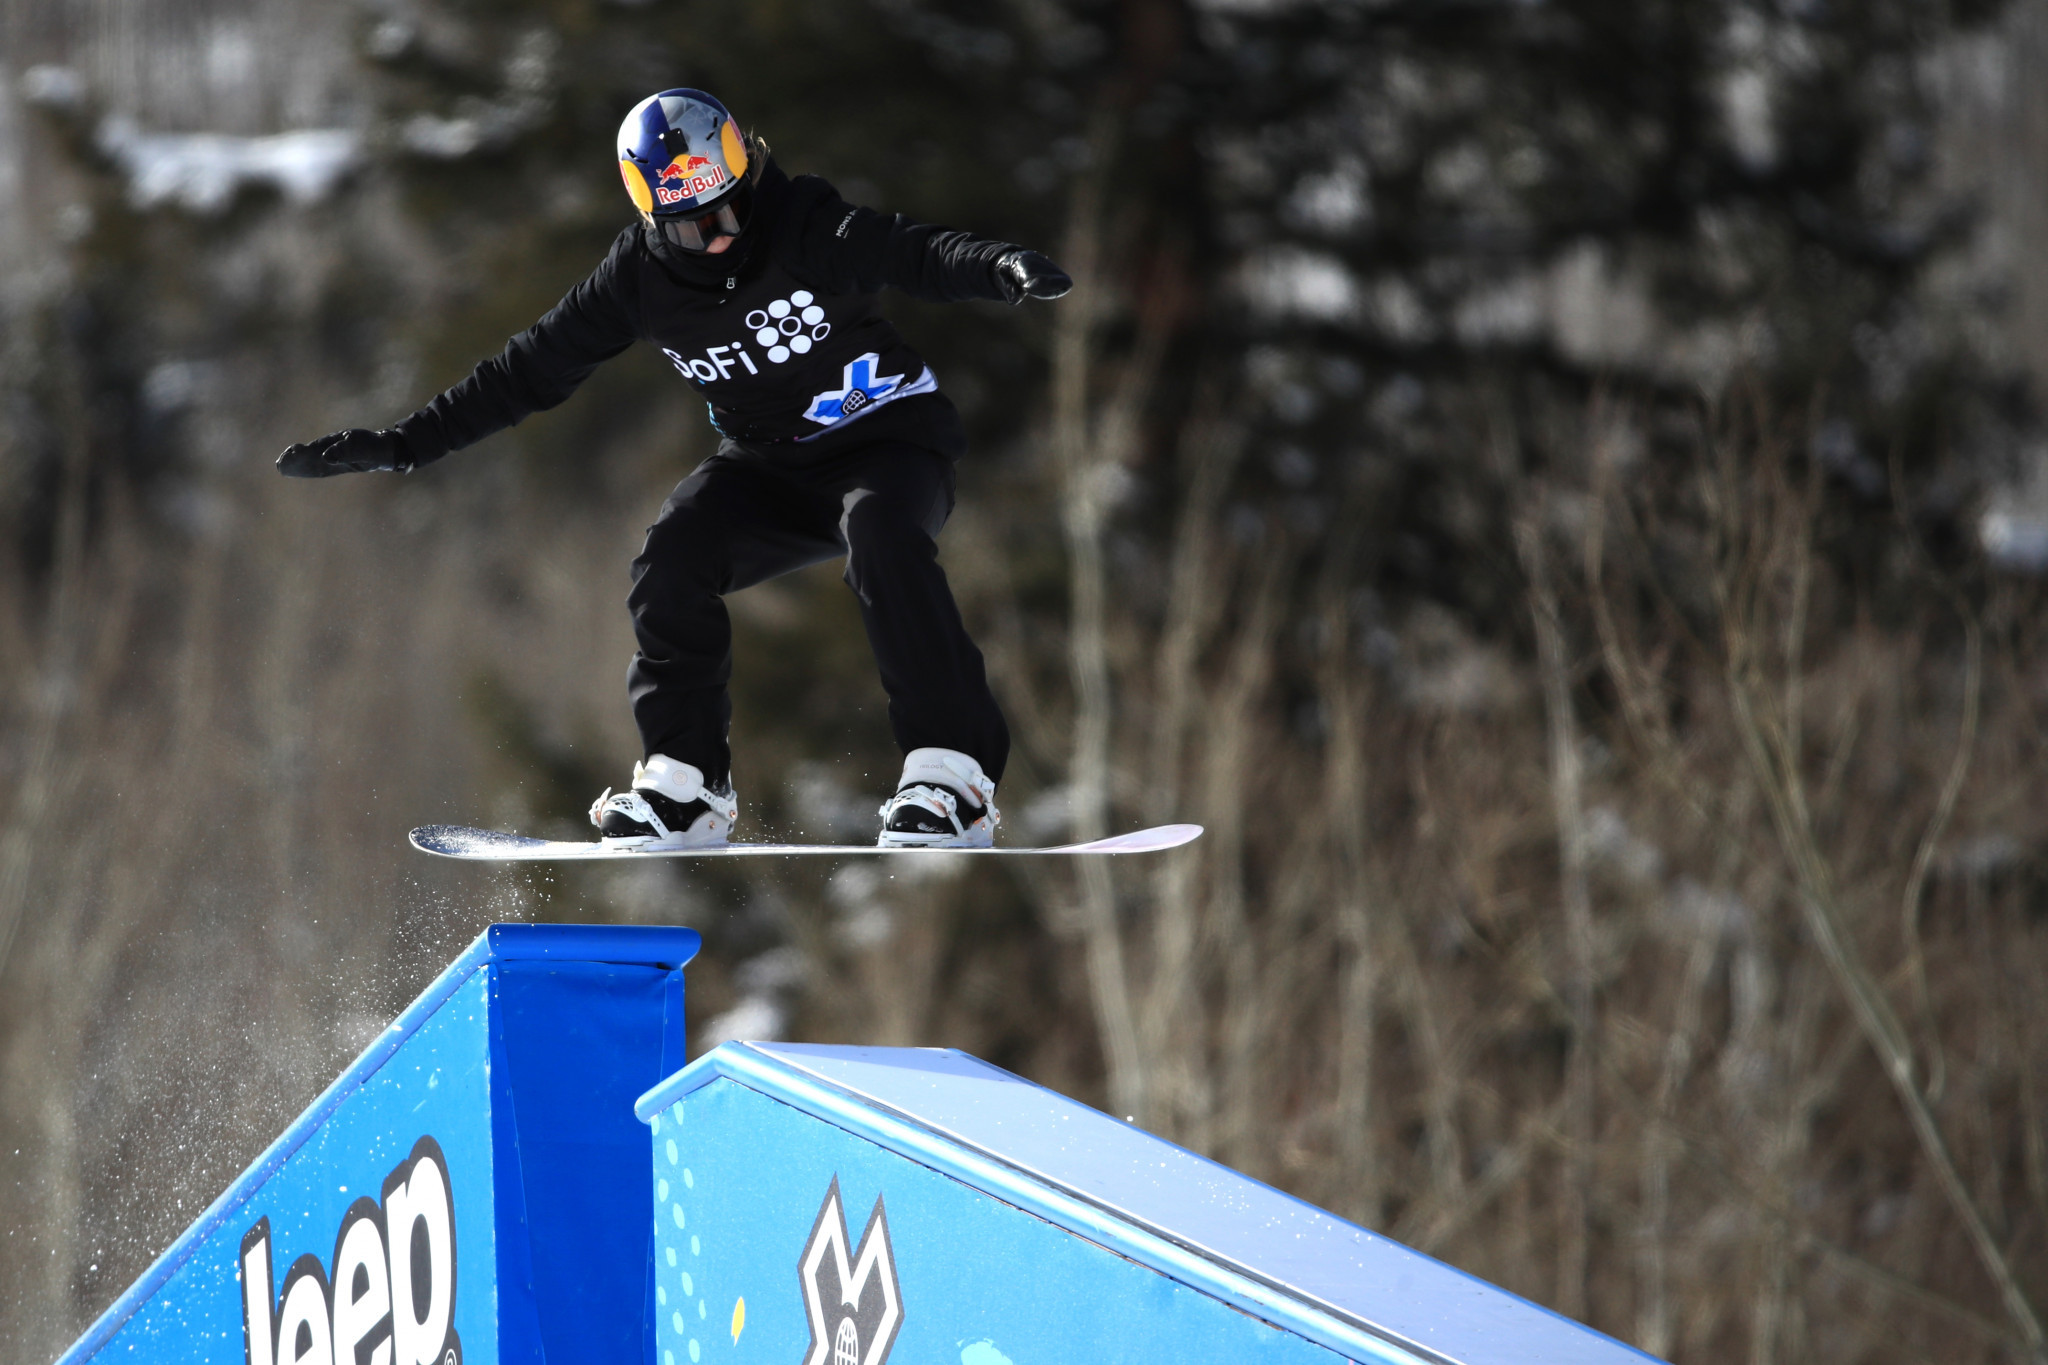 Sadowski-Synnott becomes first New Zealand snowboarder to win Winter X Games gold medal